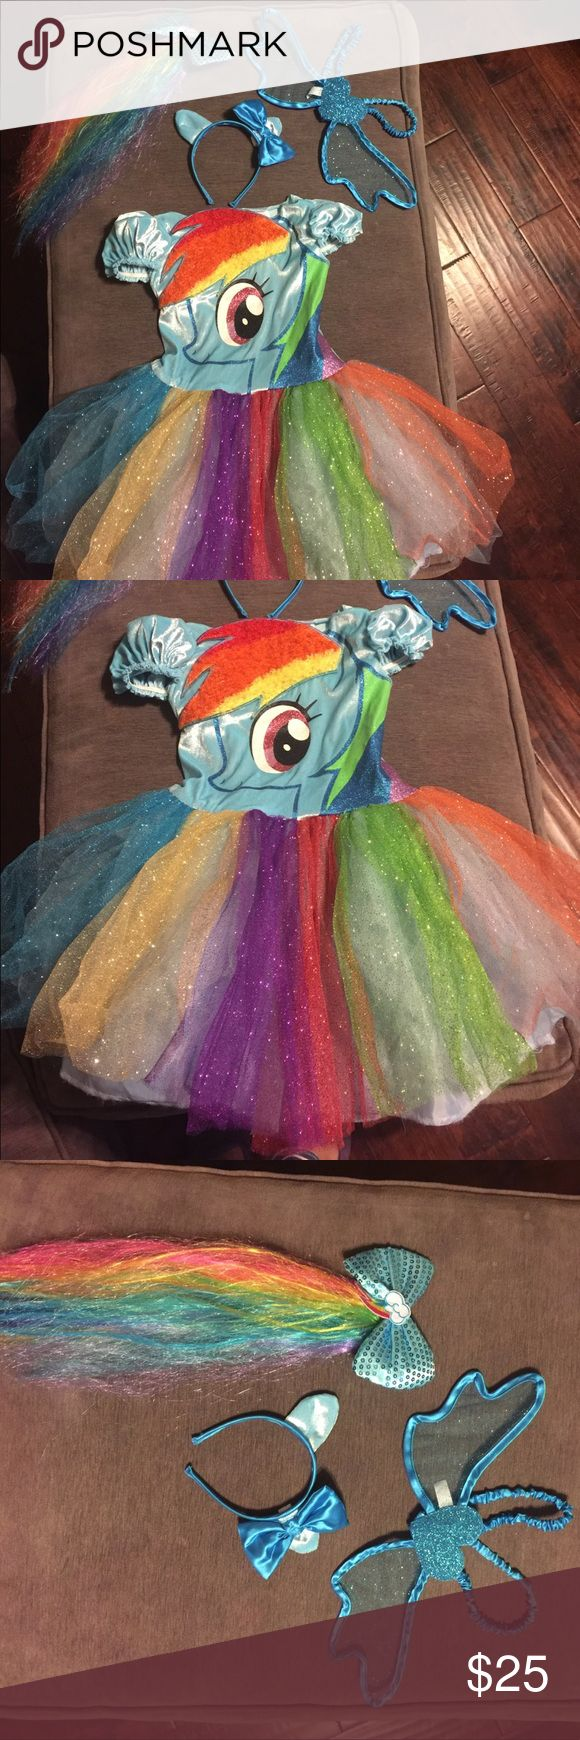 "Rainbow Dash costume sz 4-6x Full Rainbow Dash costume with headband ears/bow, wings, and rainbow ponytail barrette (that we clipped to the back of the dress as a ""real tail"" instead).  Excellent condition. No rips or stains. Smoke free home.  Update:  Found the fingerless gloves and another headband (broken)  that go with this set.  See additional photos My Little Pony Costumes"